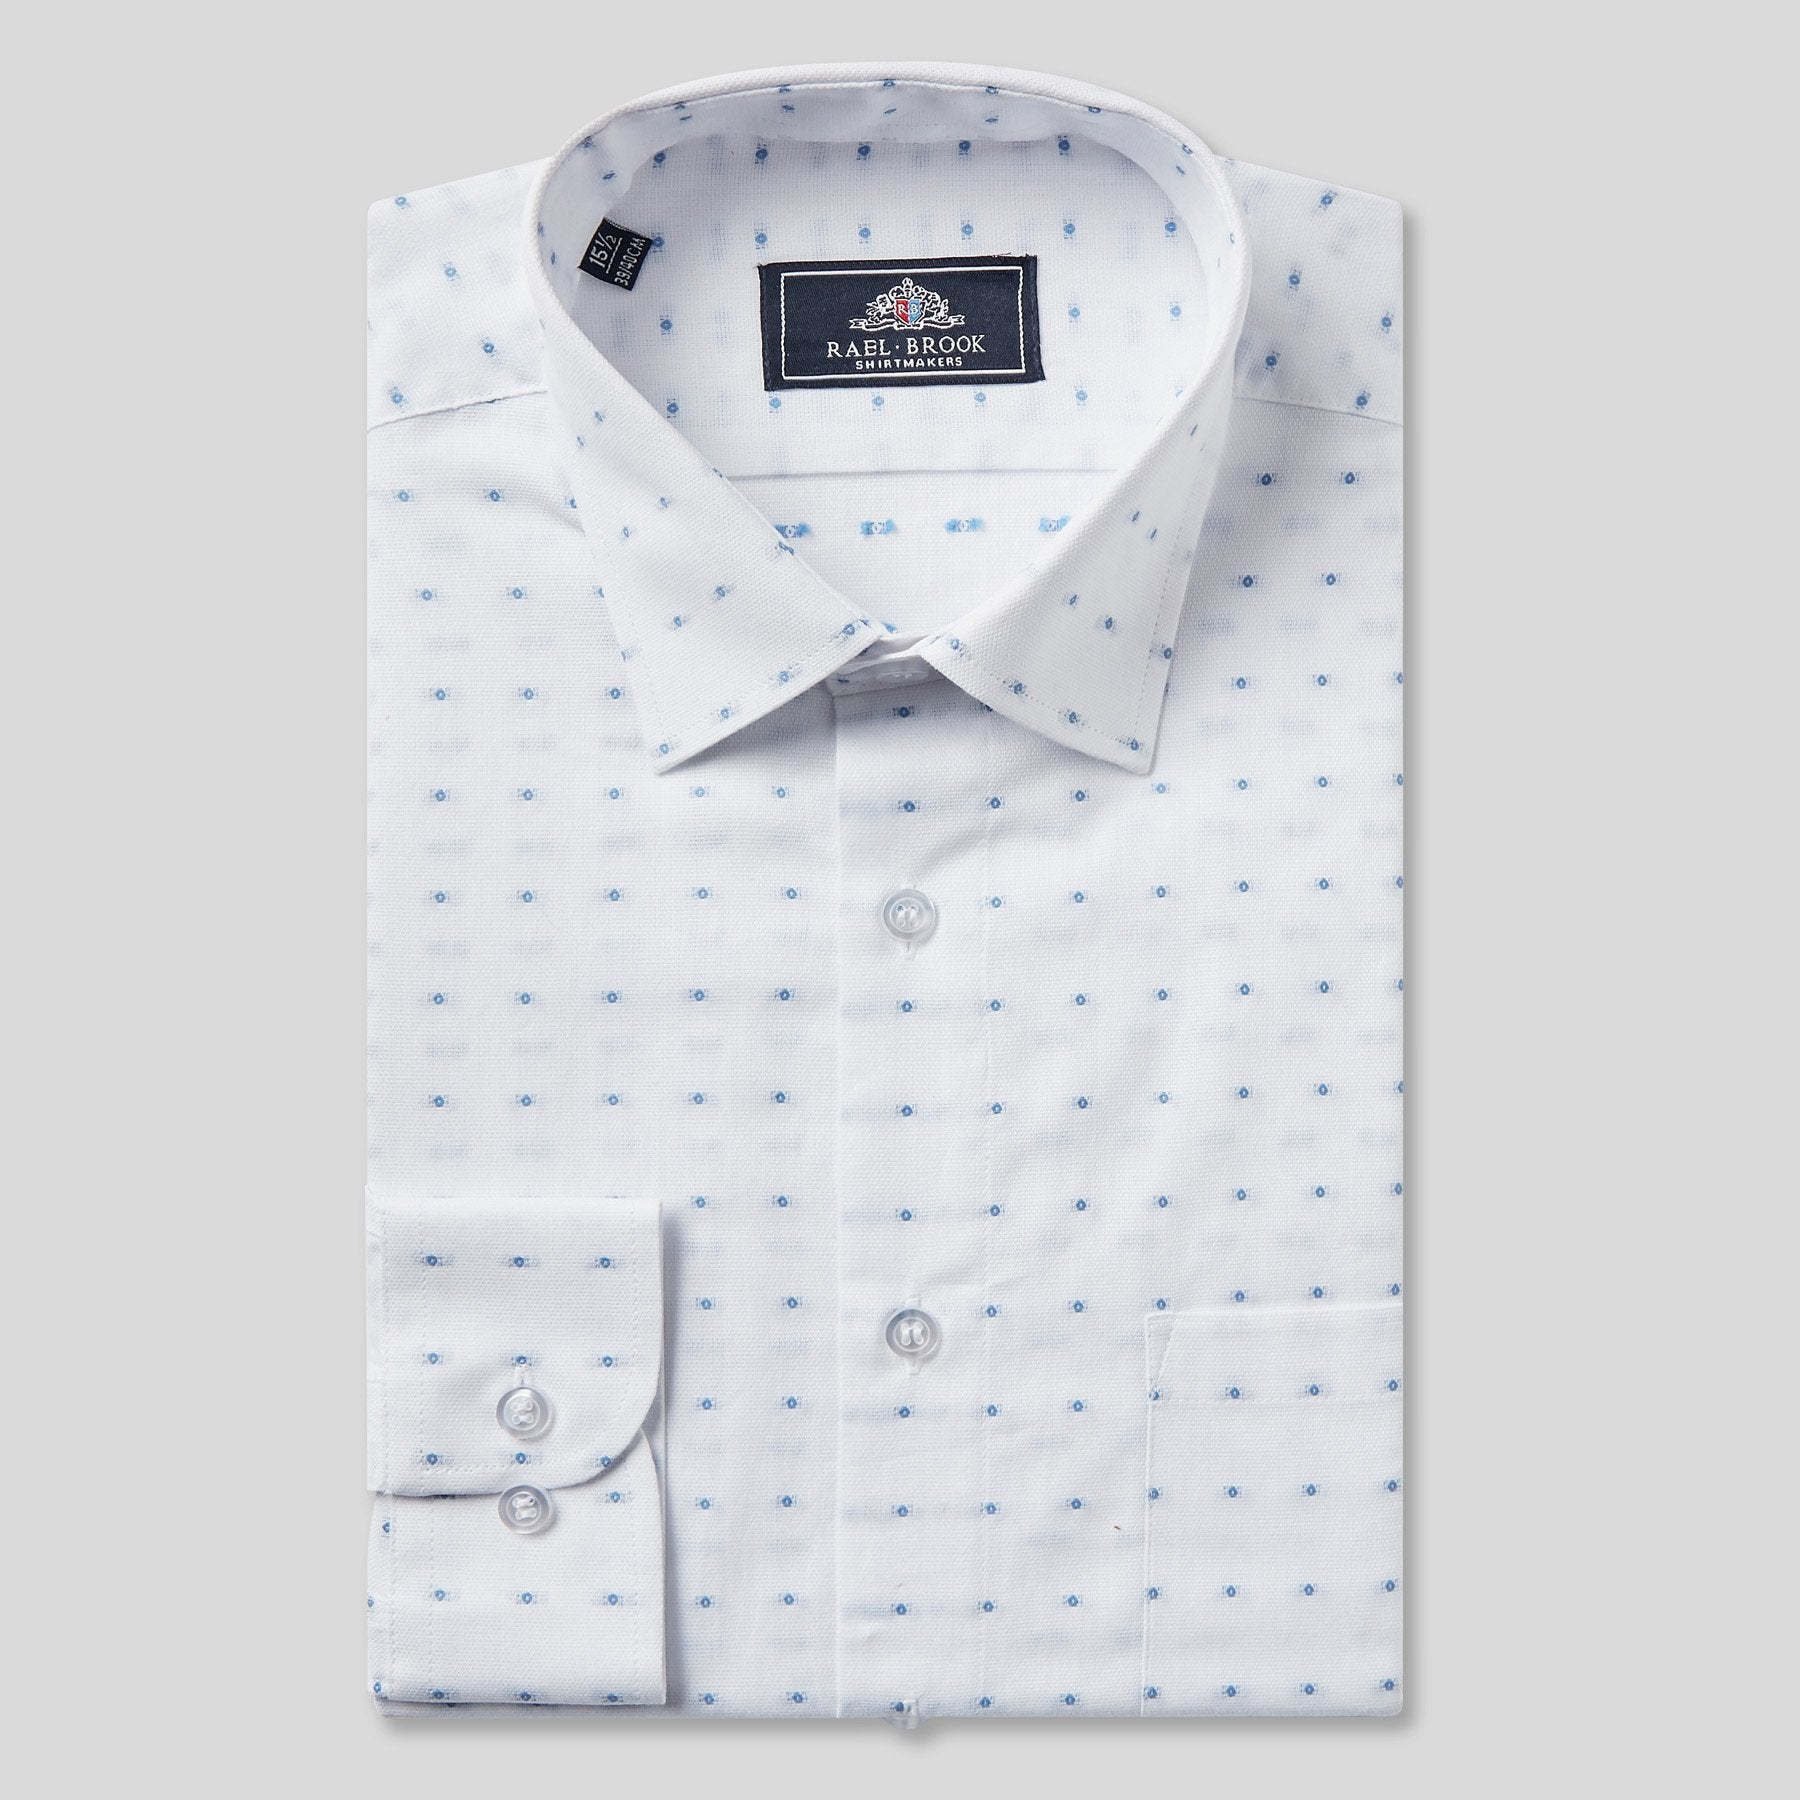 4791-Rael-Brook-Classic-Fit-White-Dobby-Weave-Check-Single-Cuff-Shirt-1